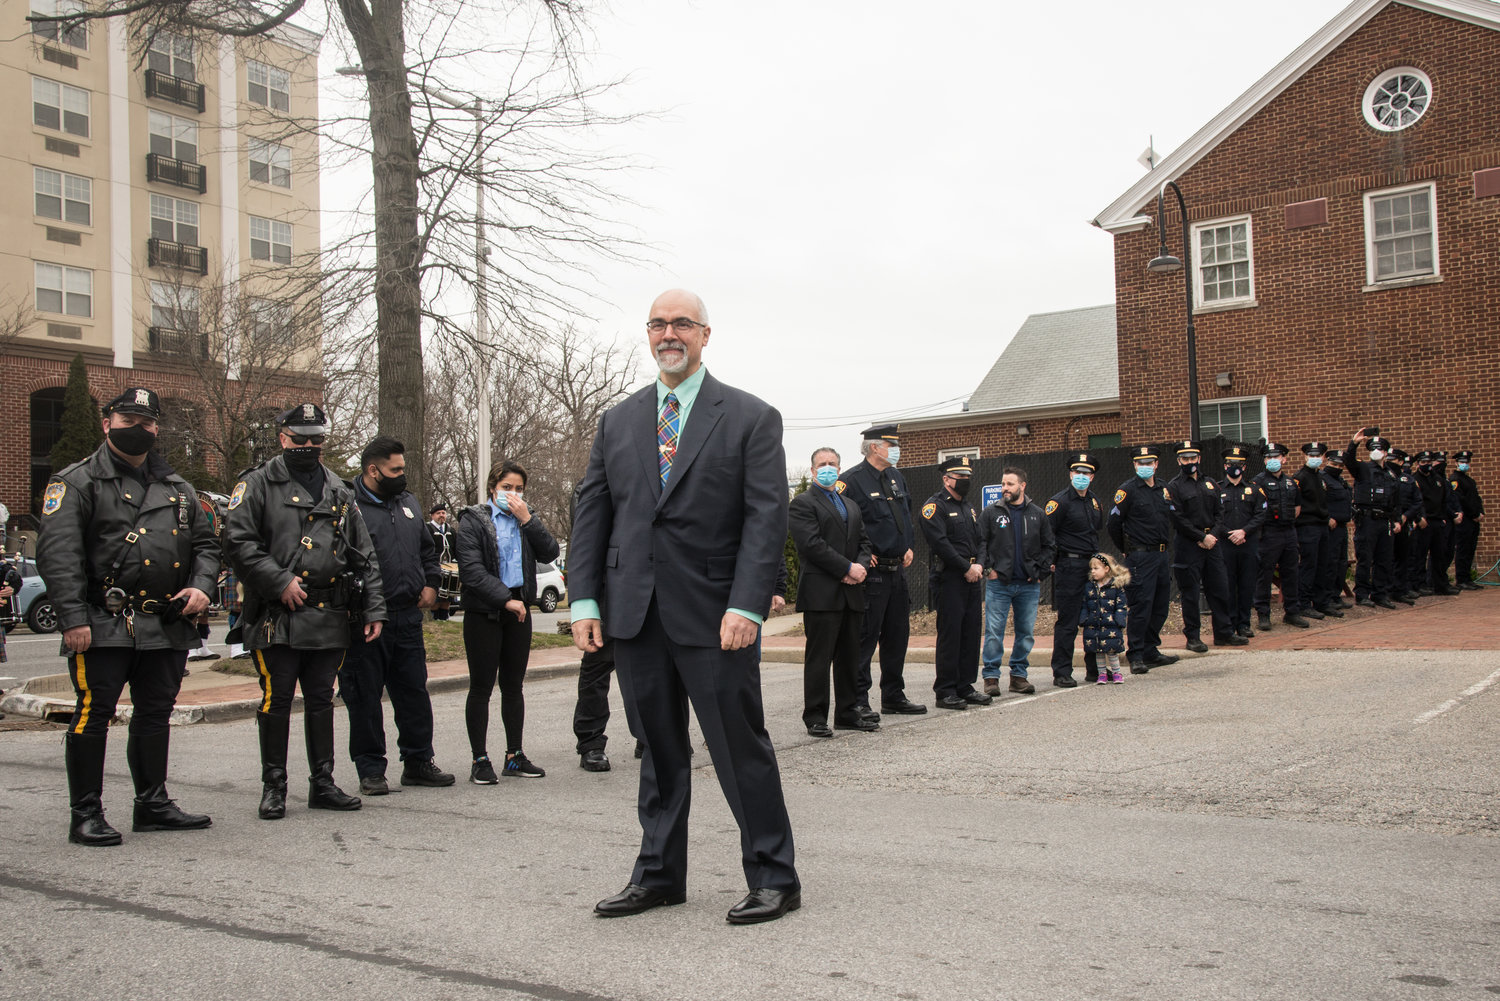 Detective Chris Albin retired on March 17, after 27 years with the Glen Cove Police Department. Members of the Nassau County, Suffolk County and MTA Police Department Emerald Society Pipe Bands played at the walkout ceremony as he left police headquarters.